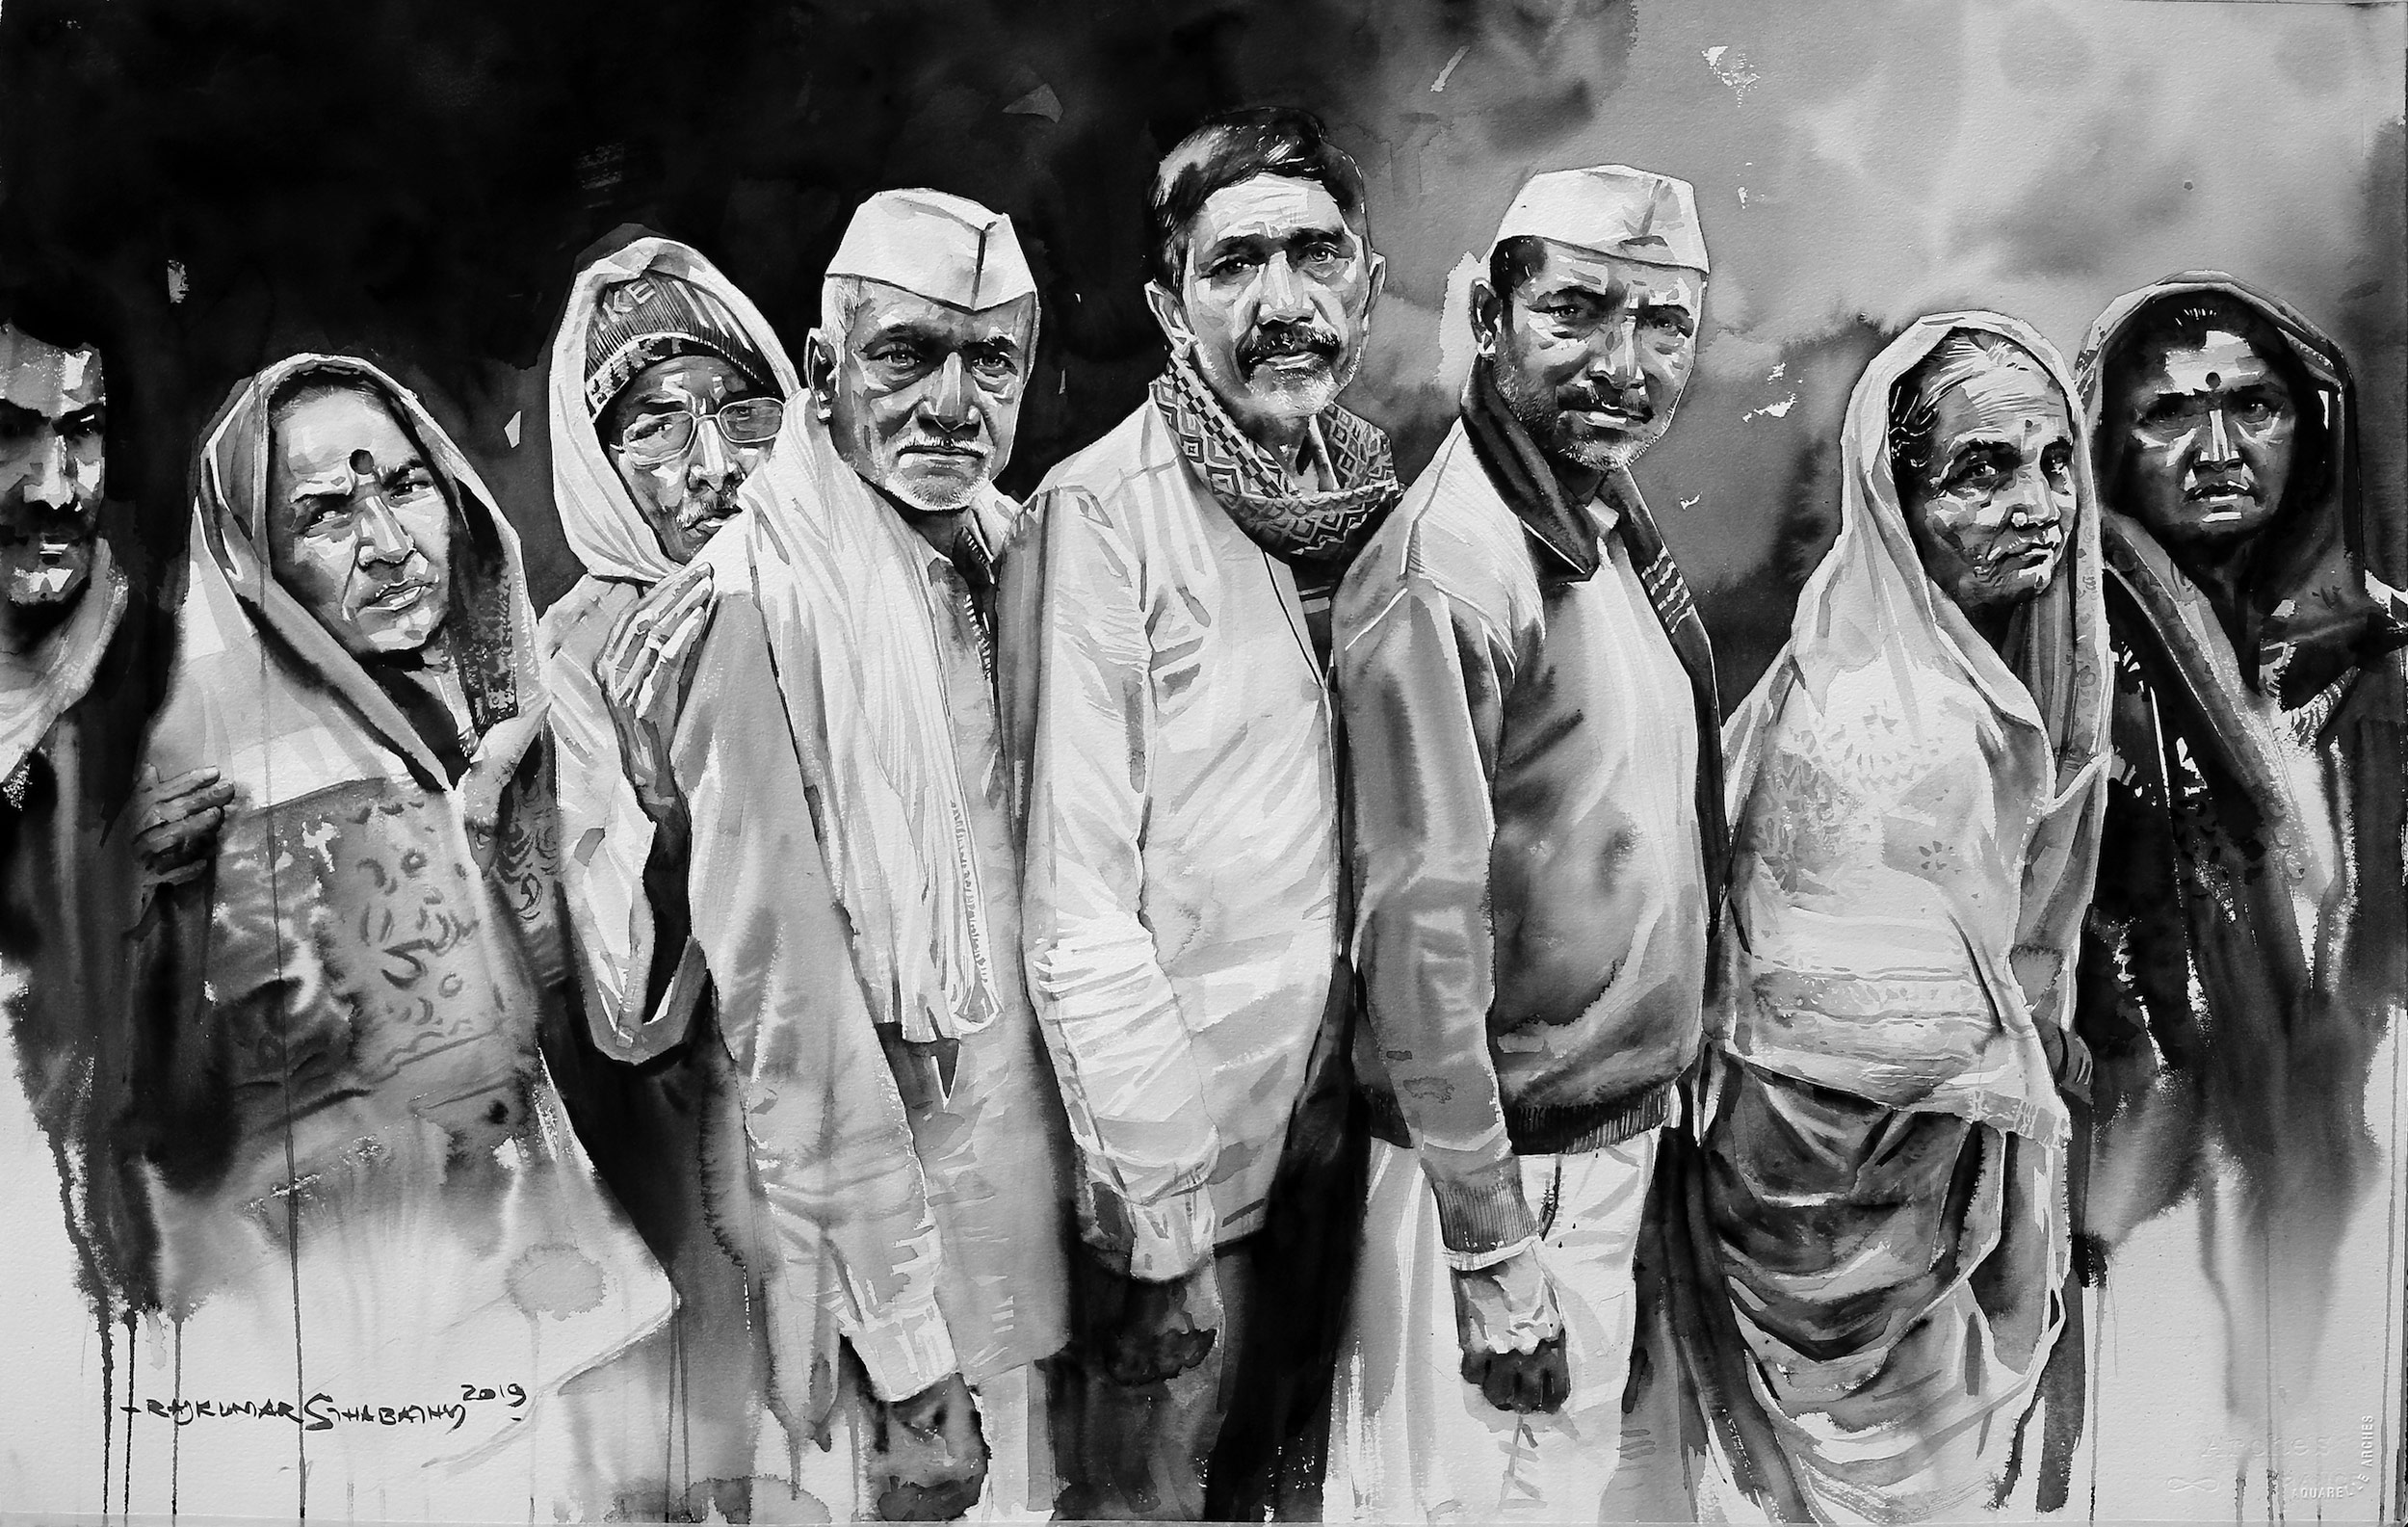 Rajkumar-Sthabathy,-Queue-for-something,-Watercolor-on-paper